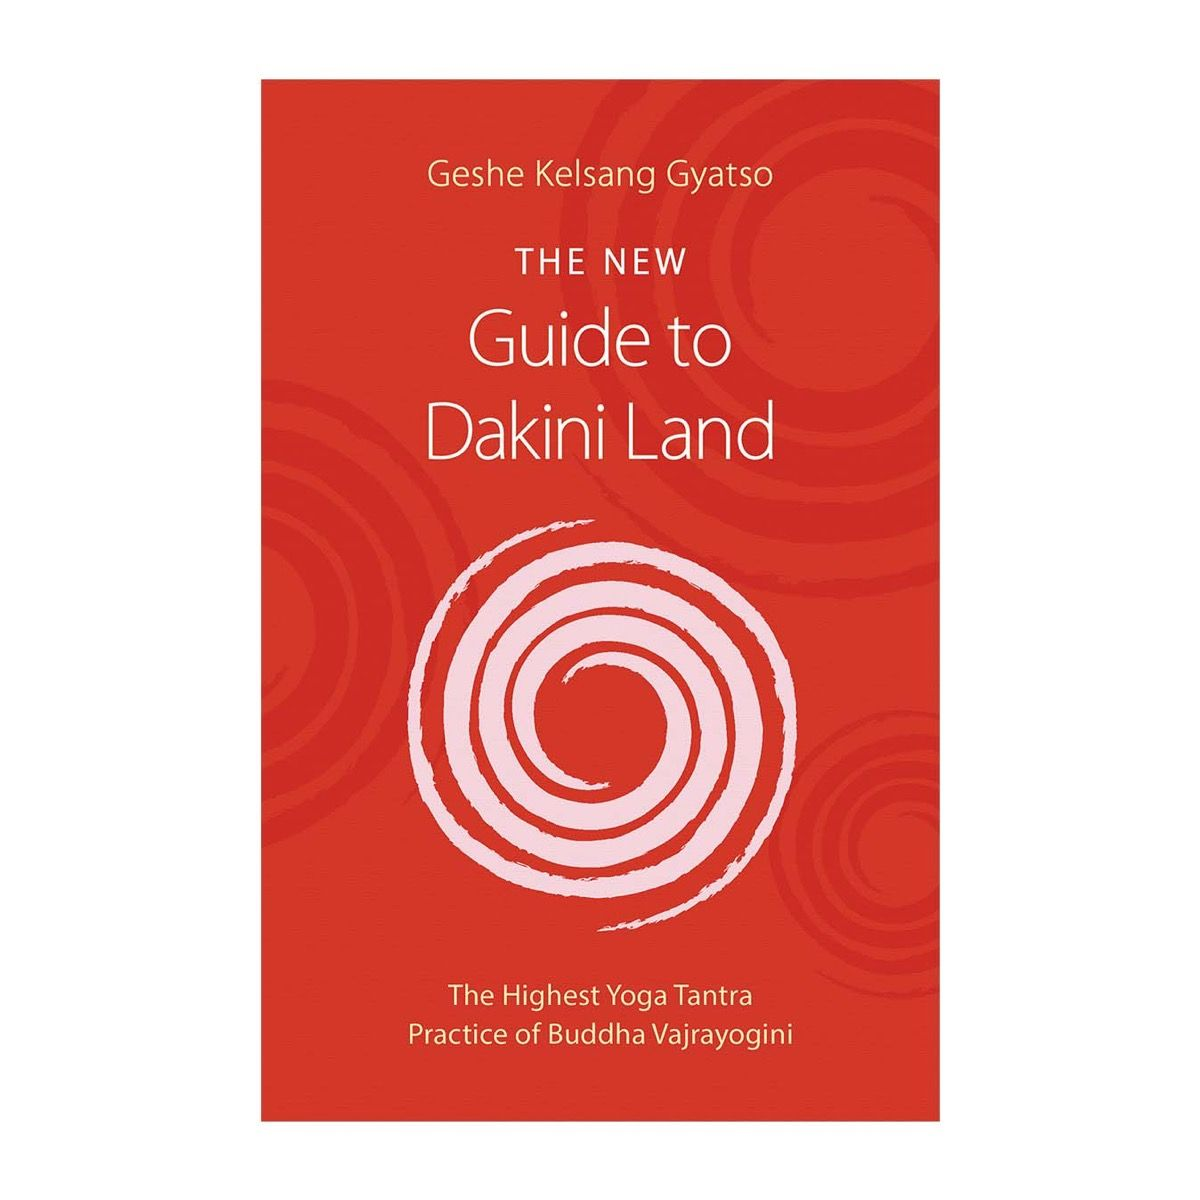 The New Guide to Dakini Land book cover, showing a joy swirl on a red background